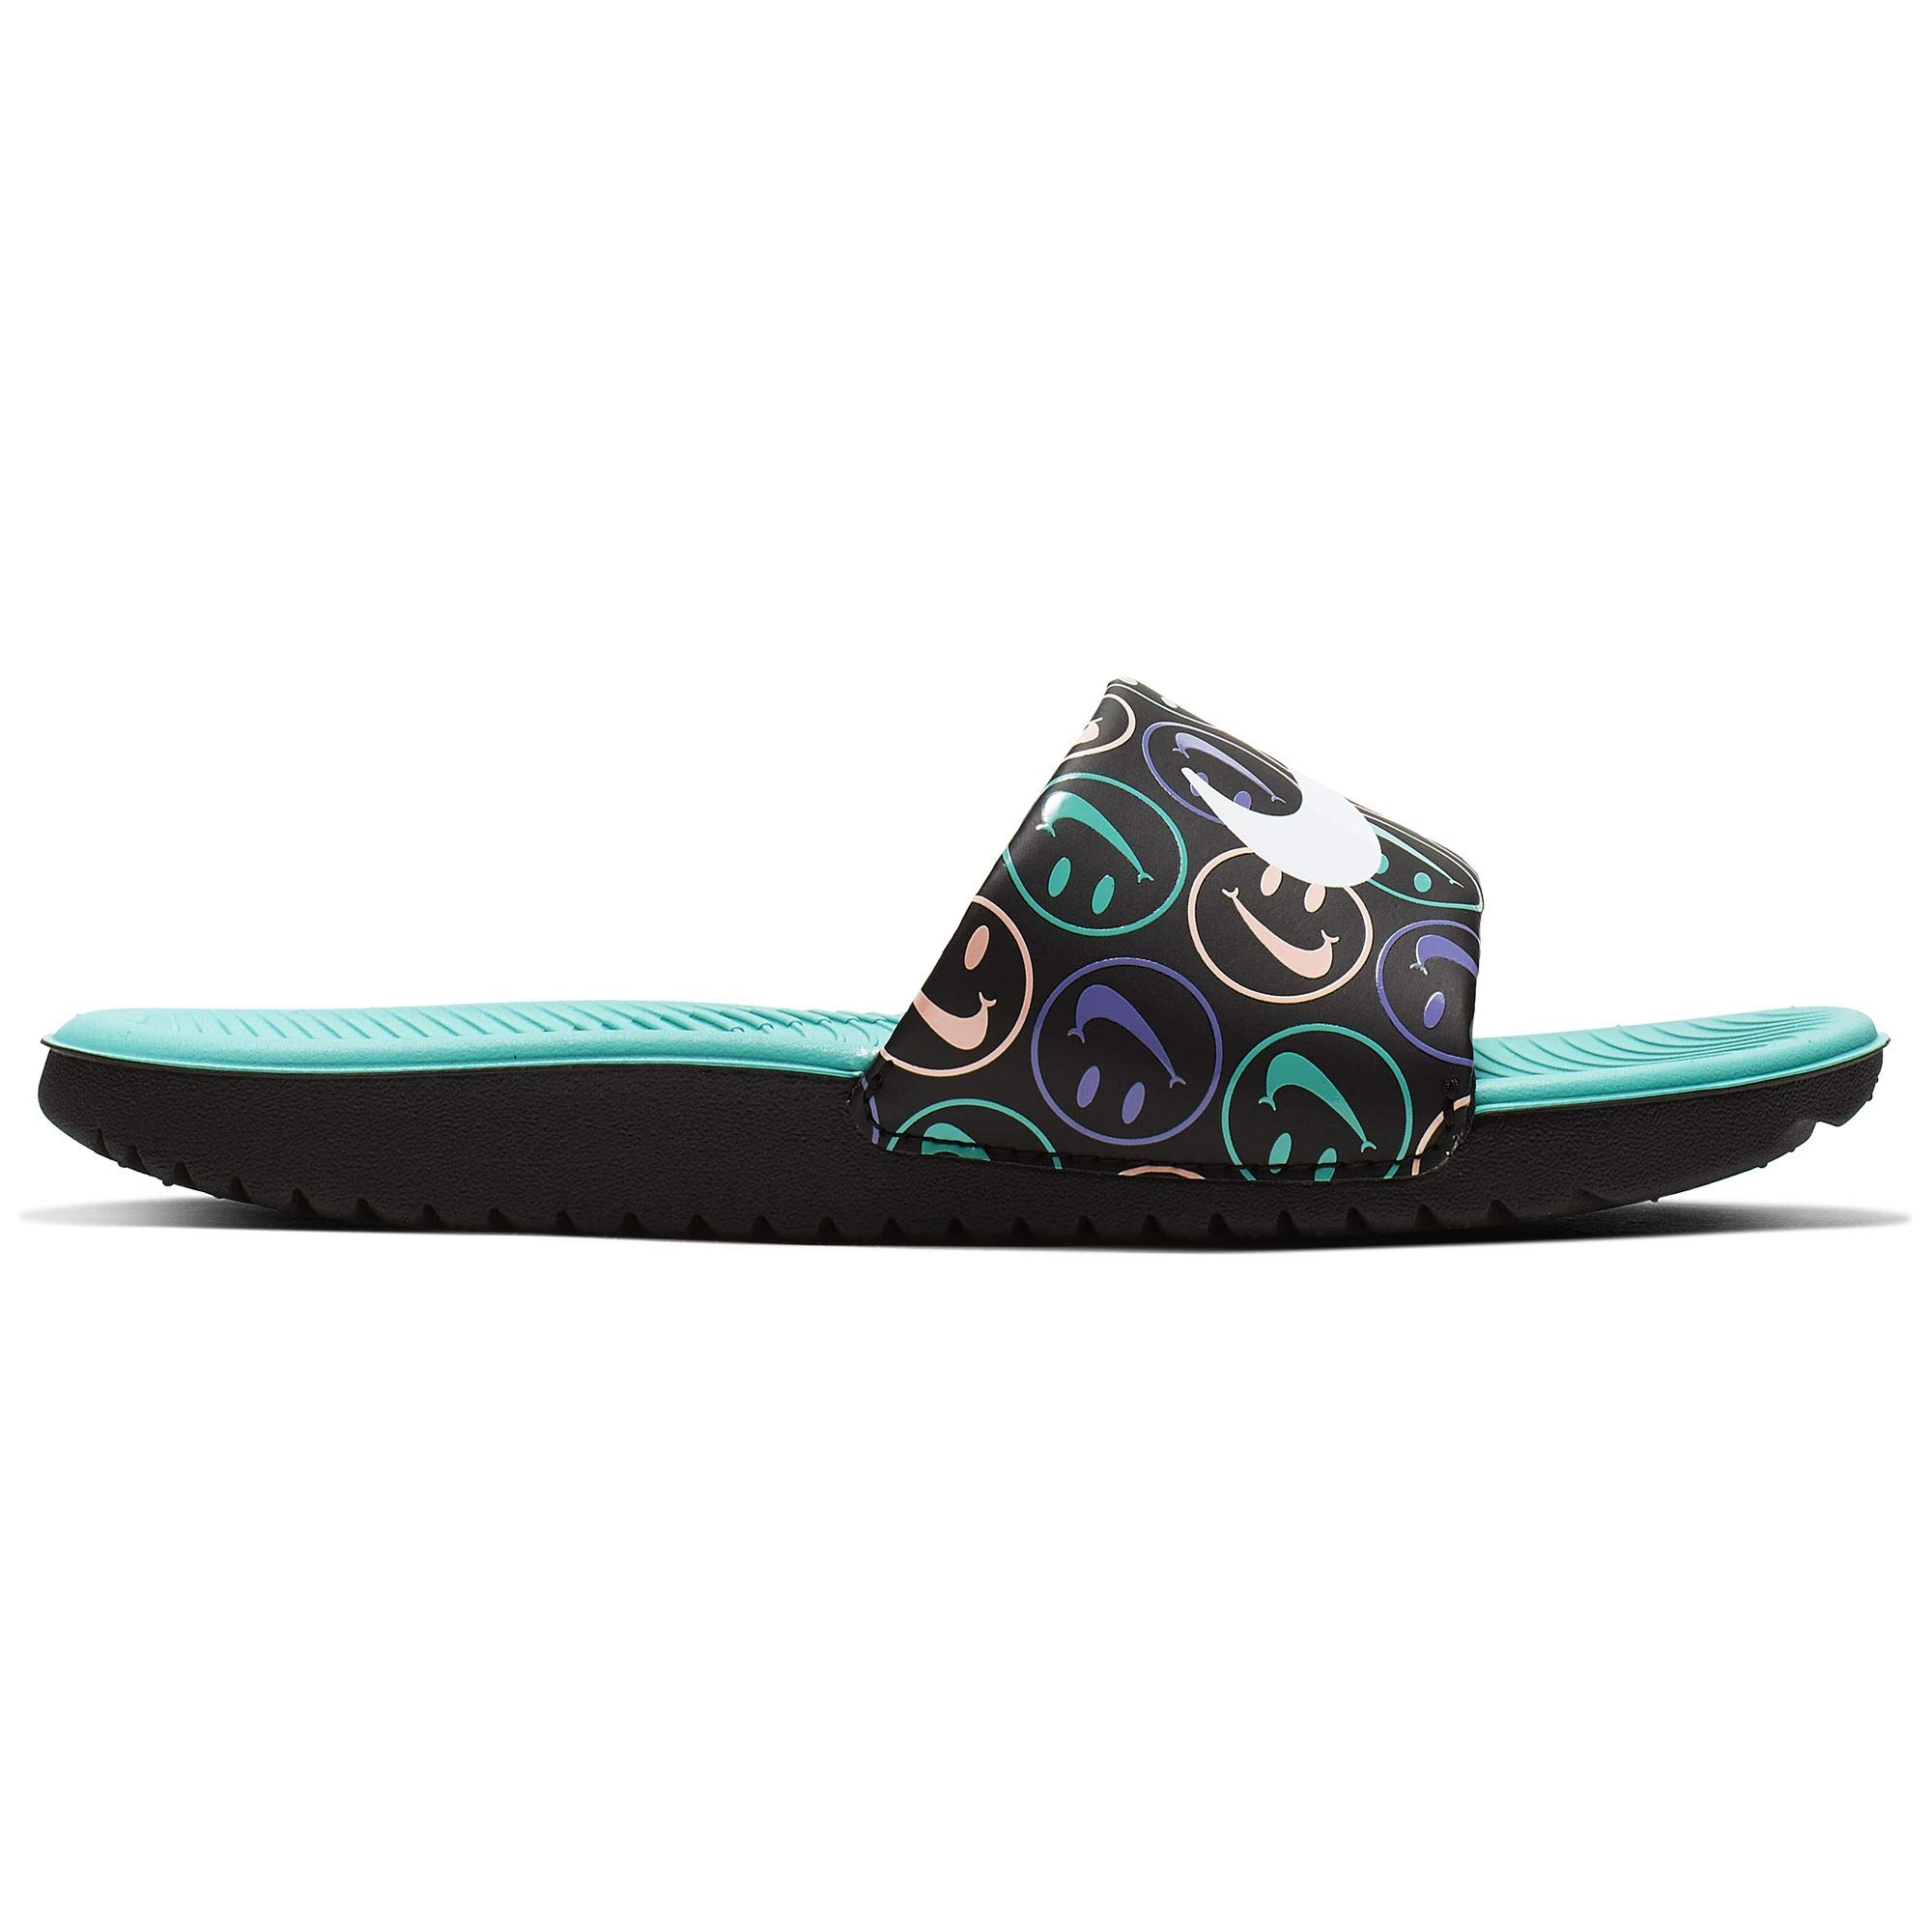 Nike Boy's Kawa Slide Printed Sandal Black/White/Space Purple/Hyper Jade Size 4 M US